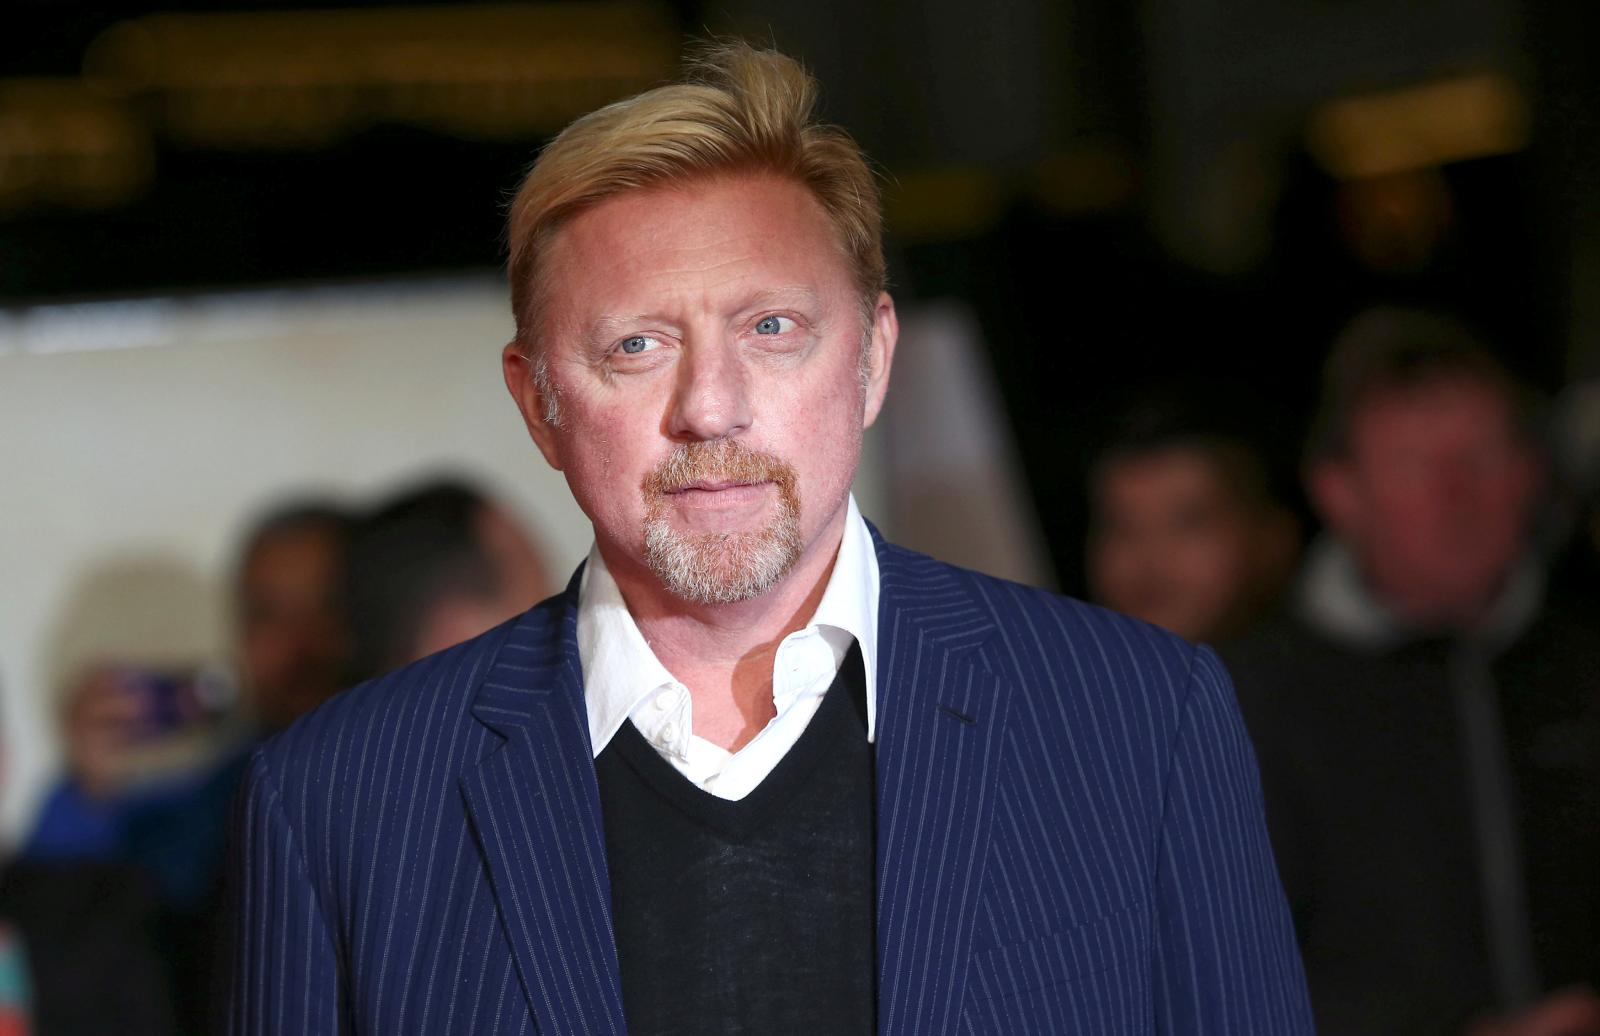 Boris becker bitcoin